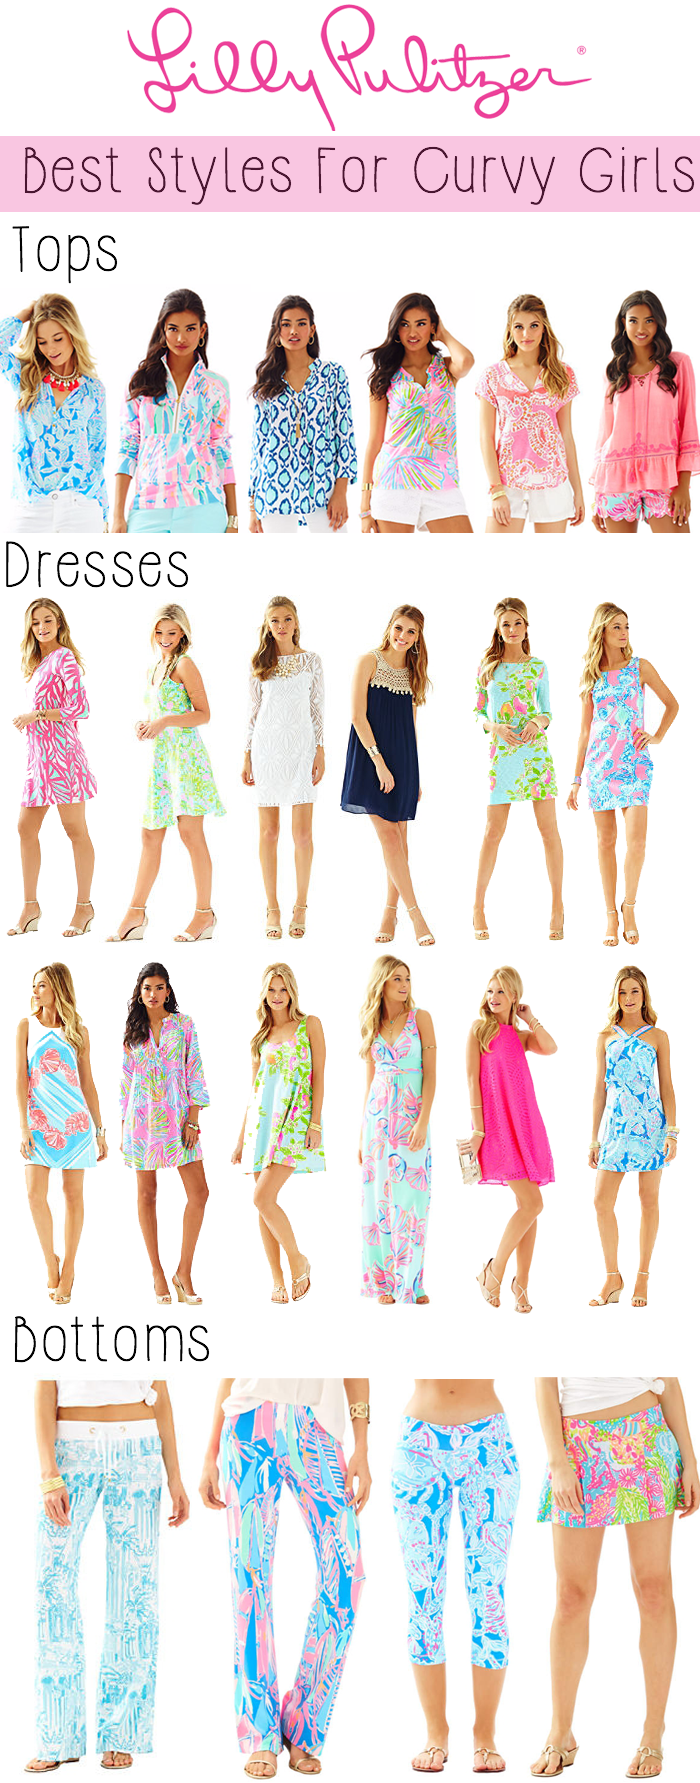 33c9144a68cf0e Lilly Pulitzer Styles Suited Best For Curvy Girls | Stylish Sassy ...